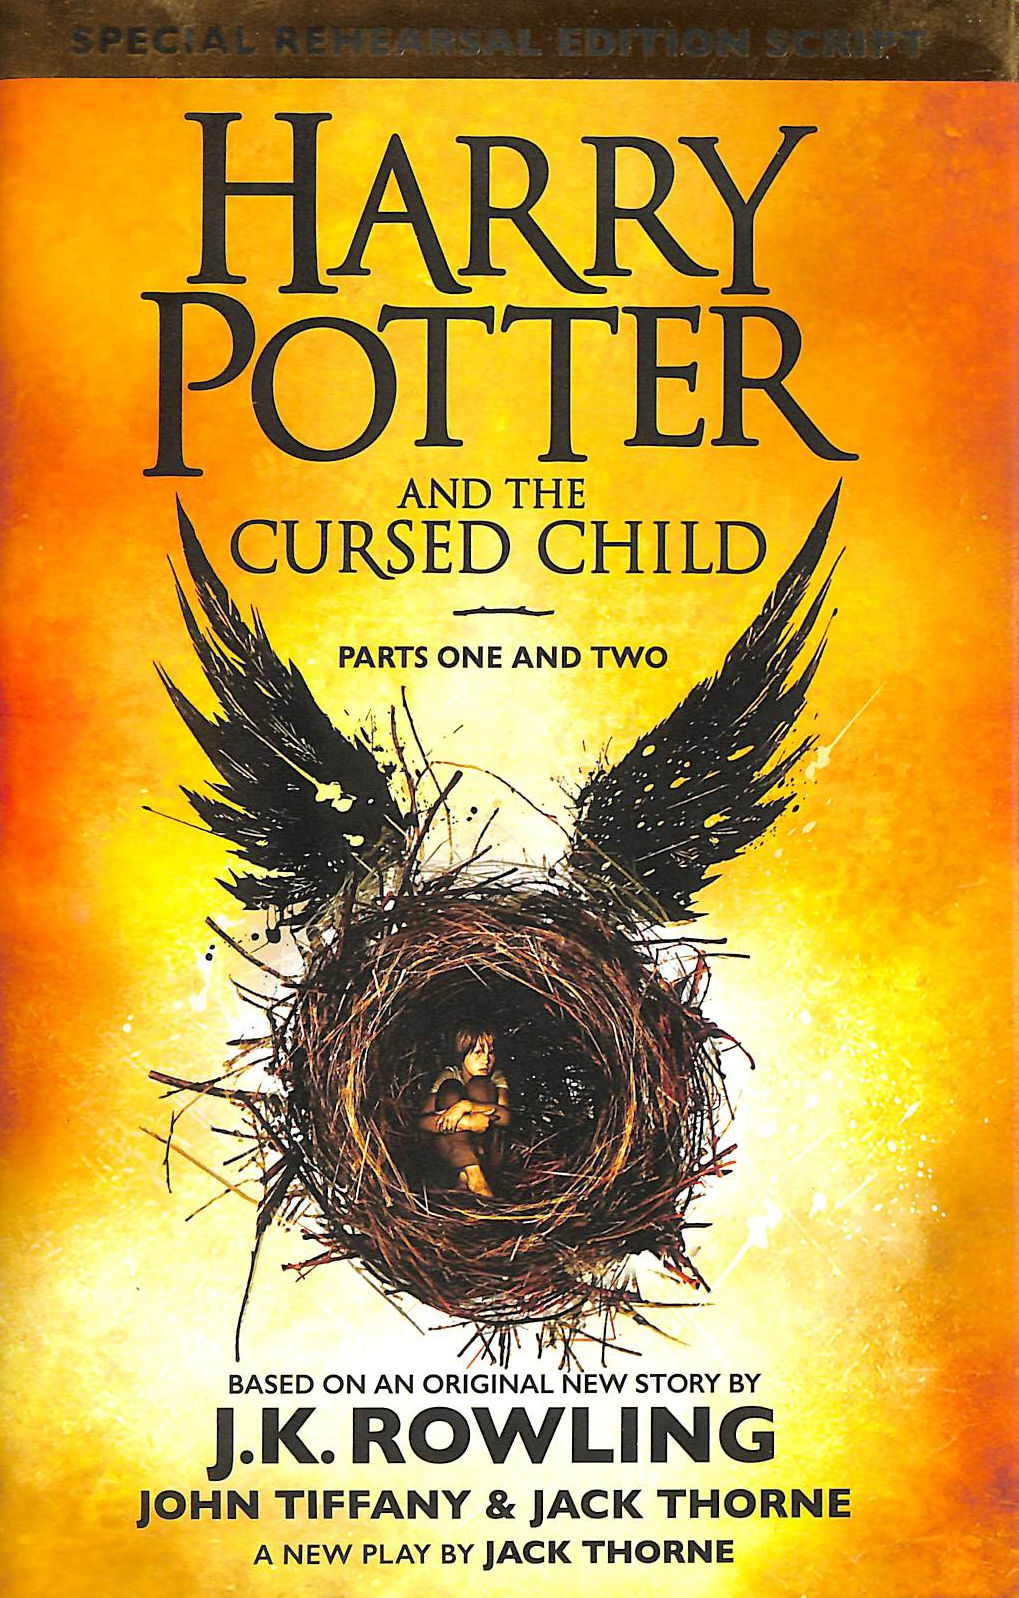 Image for Harry Potter and The Cursed Child - Parts One and Two